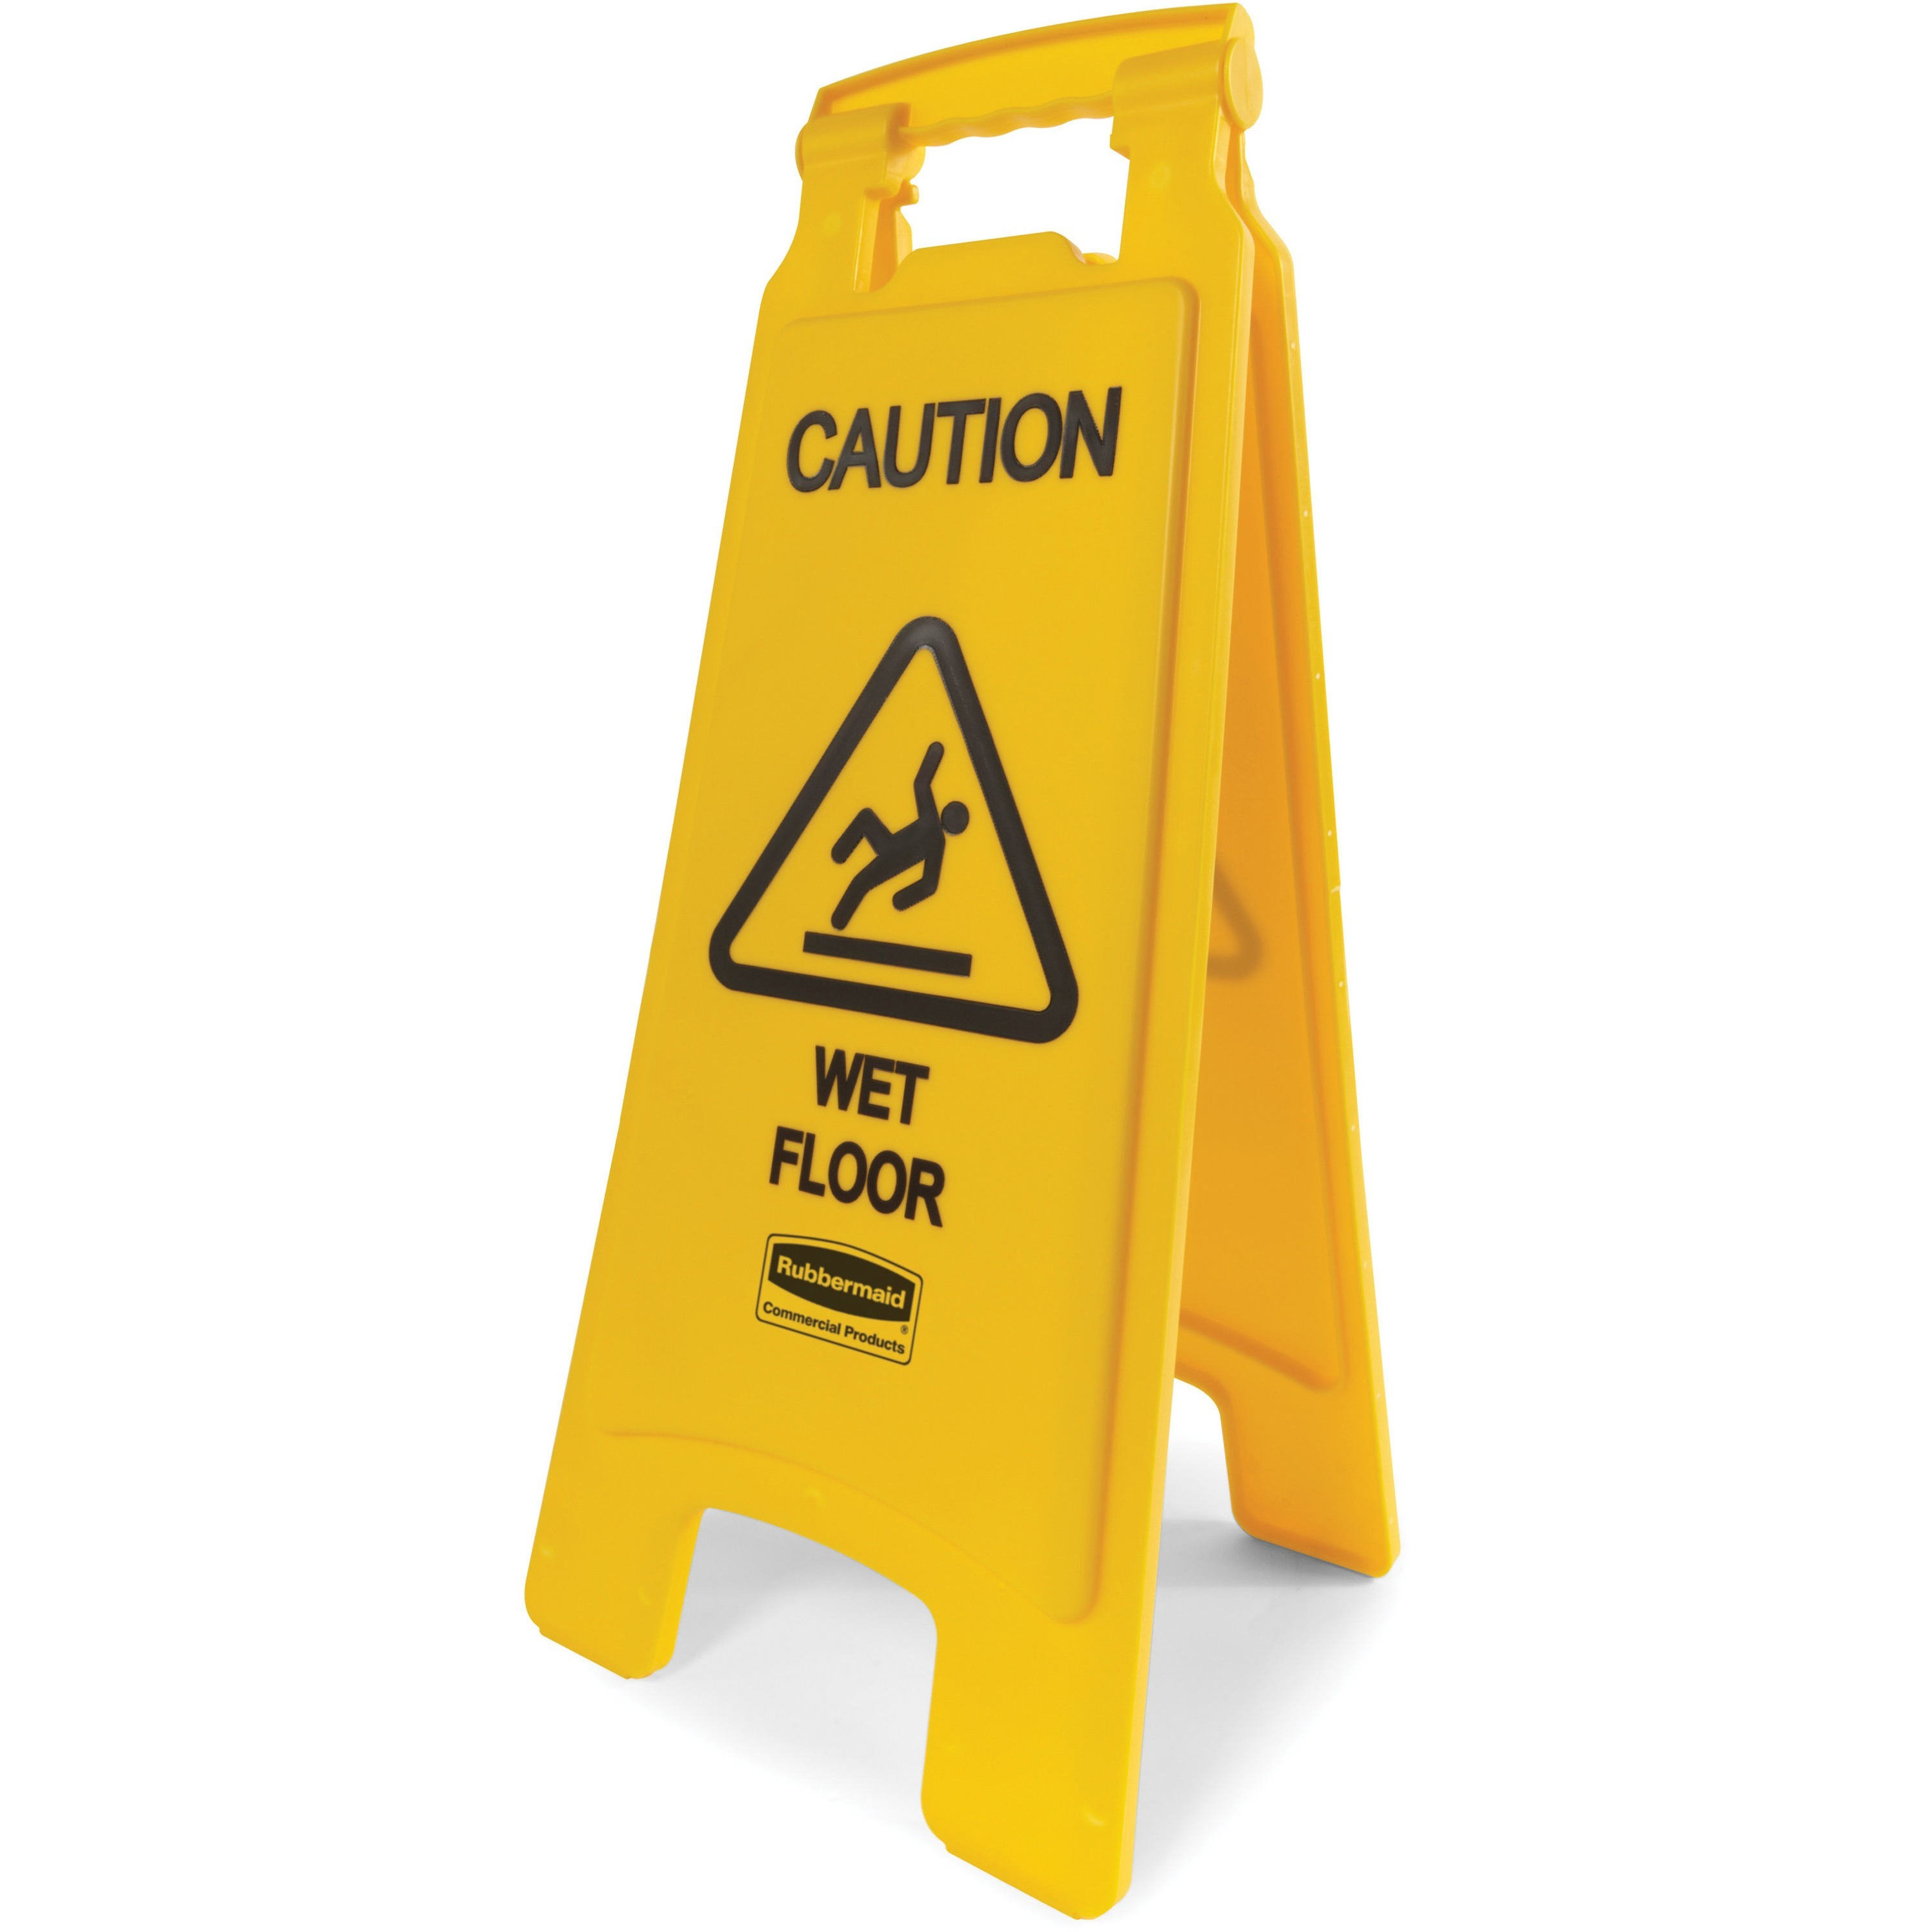 Rubbermaid Commercial, RCP611277YW, Caution Wet Floor Safety Sign, 1 Each, Yellow